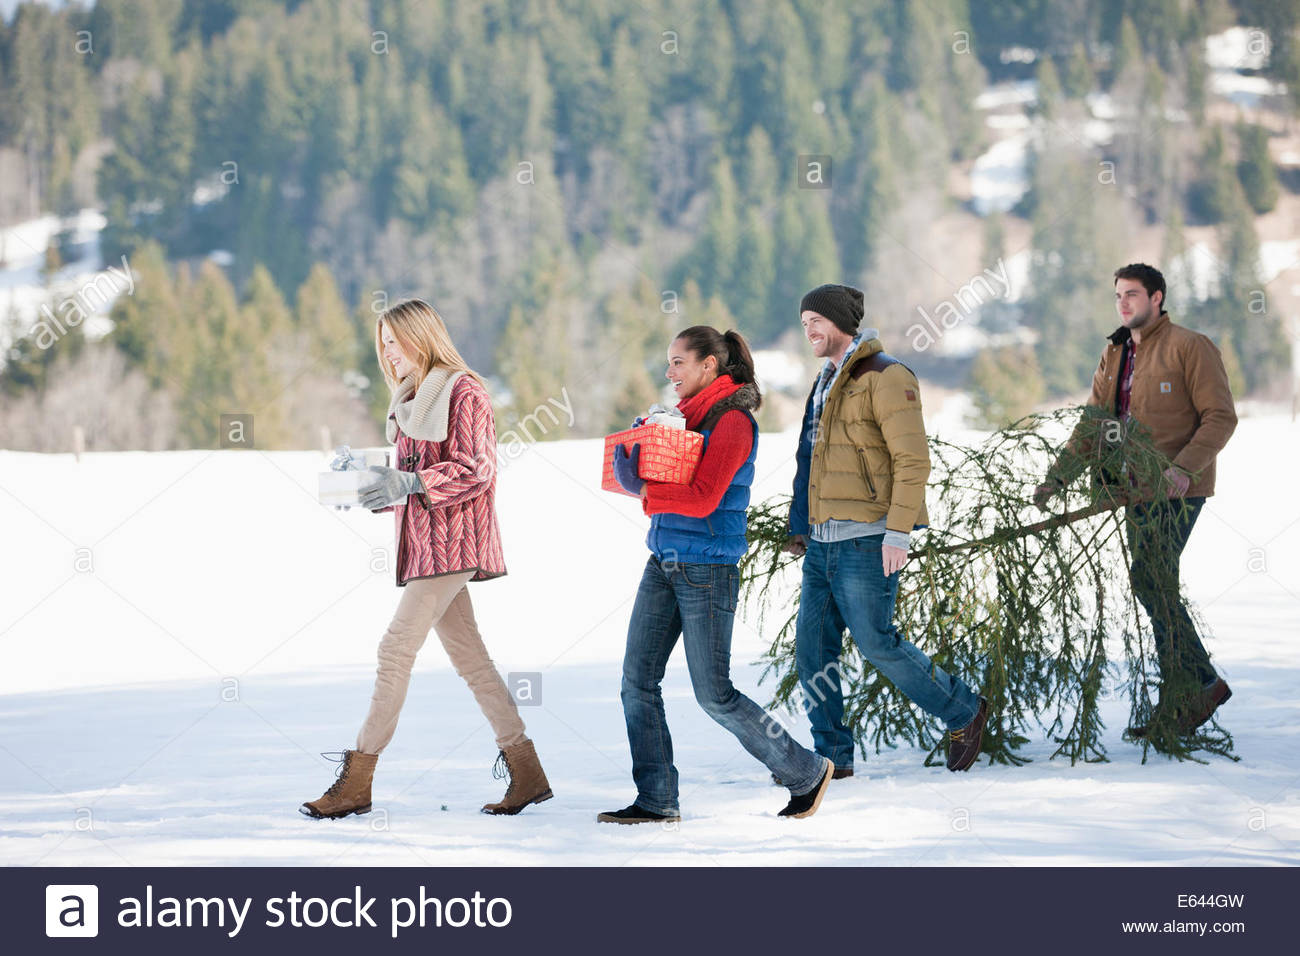 Couples carrying fresh cut Christmas tree and gifts in snow - Stock Image